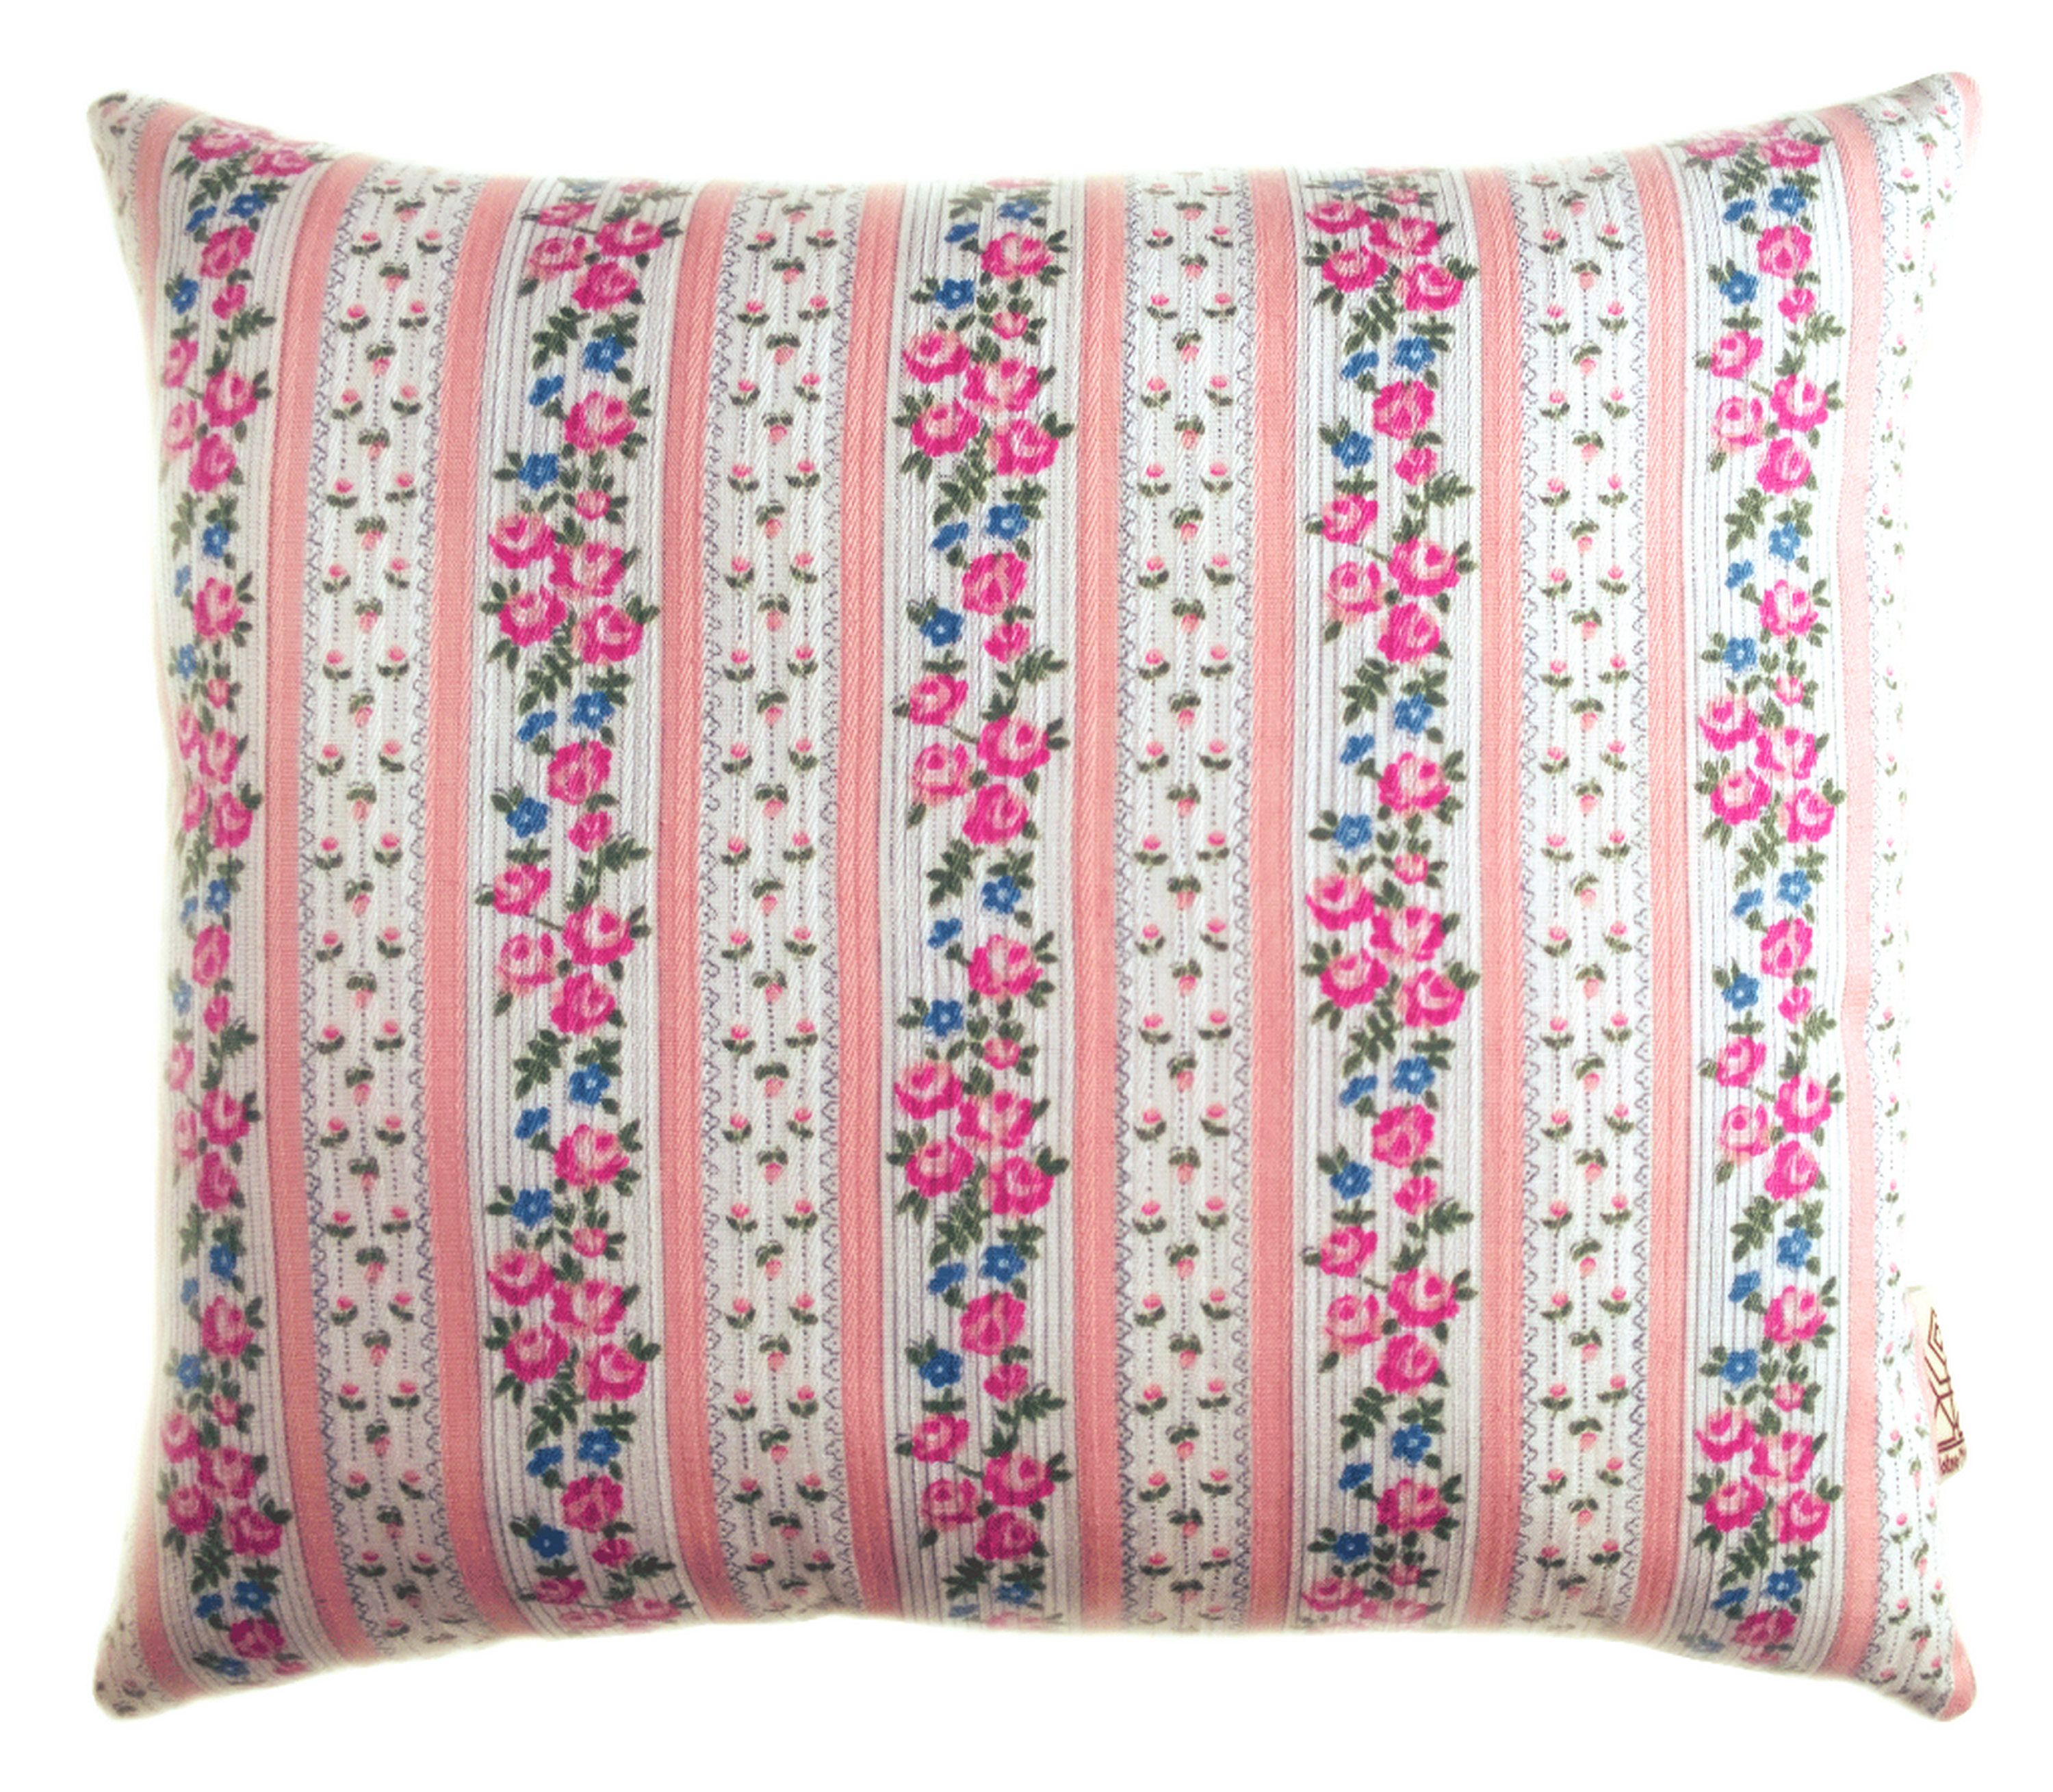 Shabby Chic Pillow Pink Roses Pale Pink And White Striped Etsy Shabby Chic Pillows Chic Pillows Shabby Chic